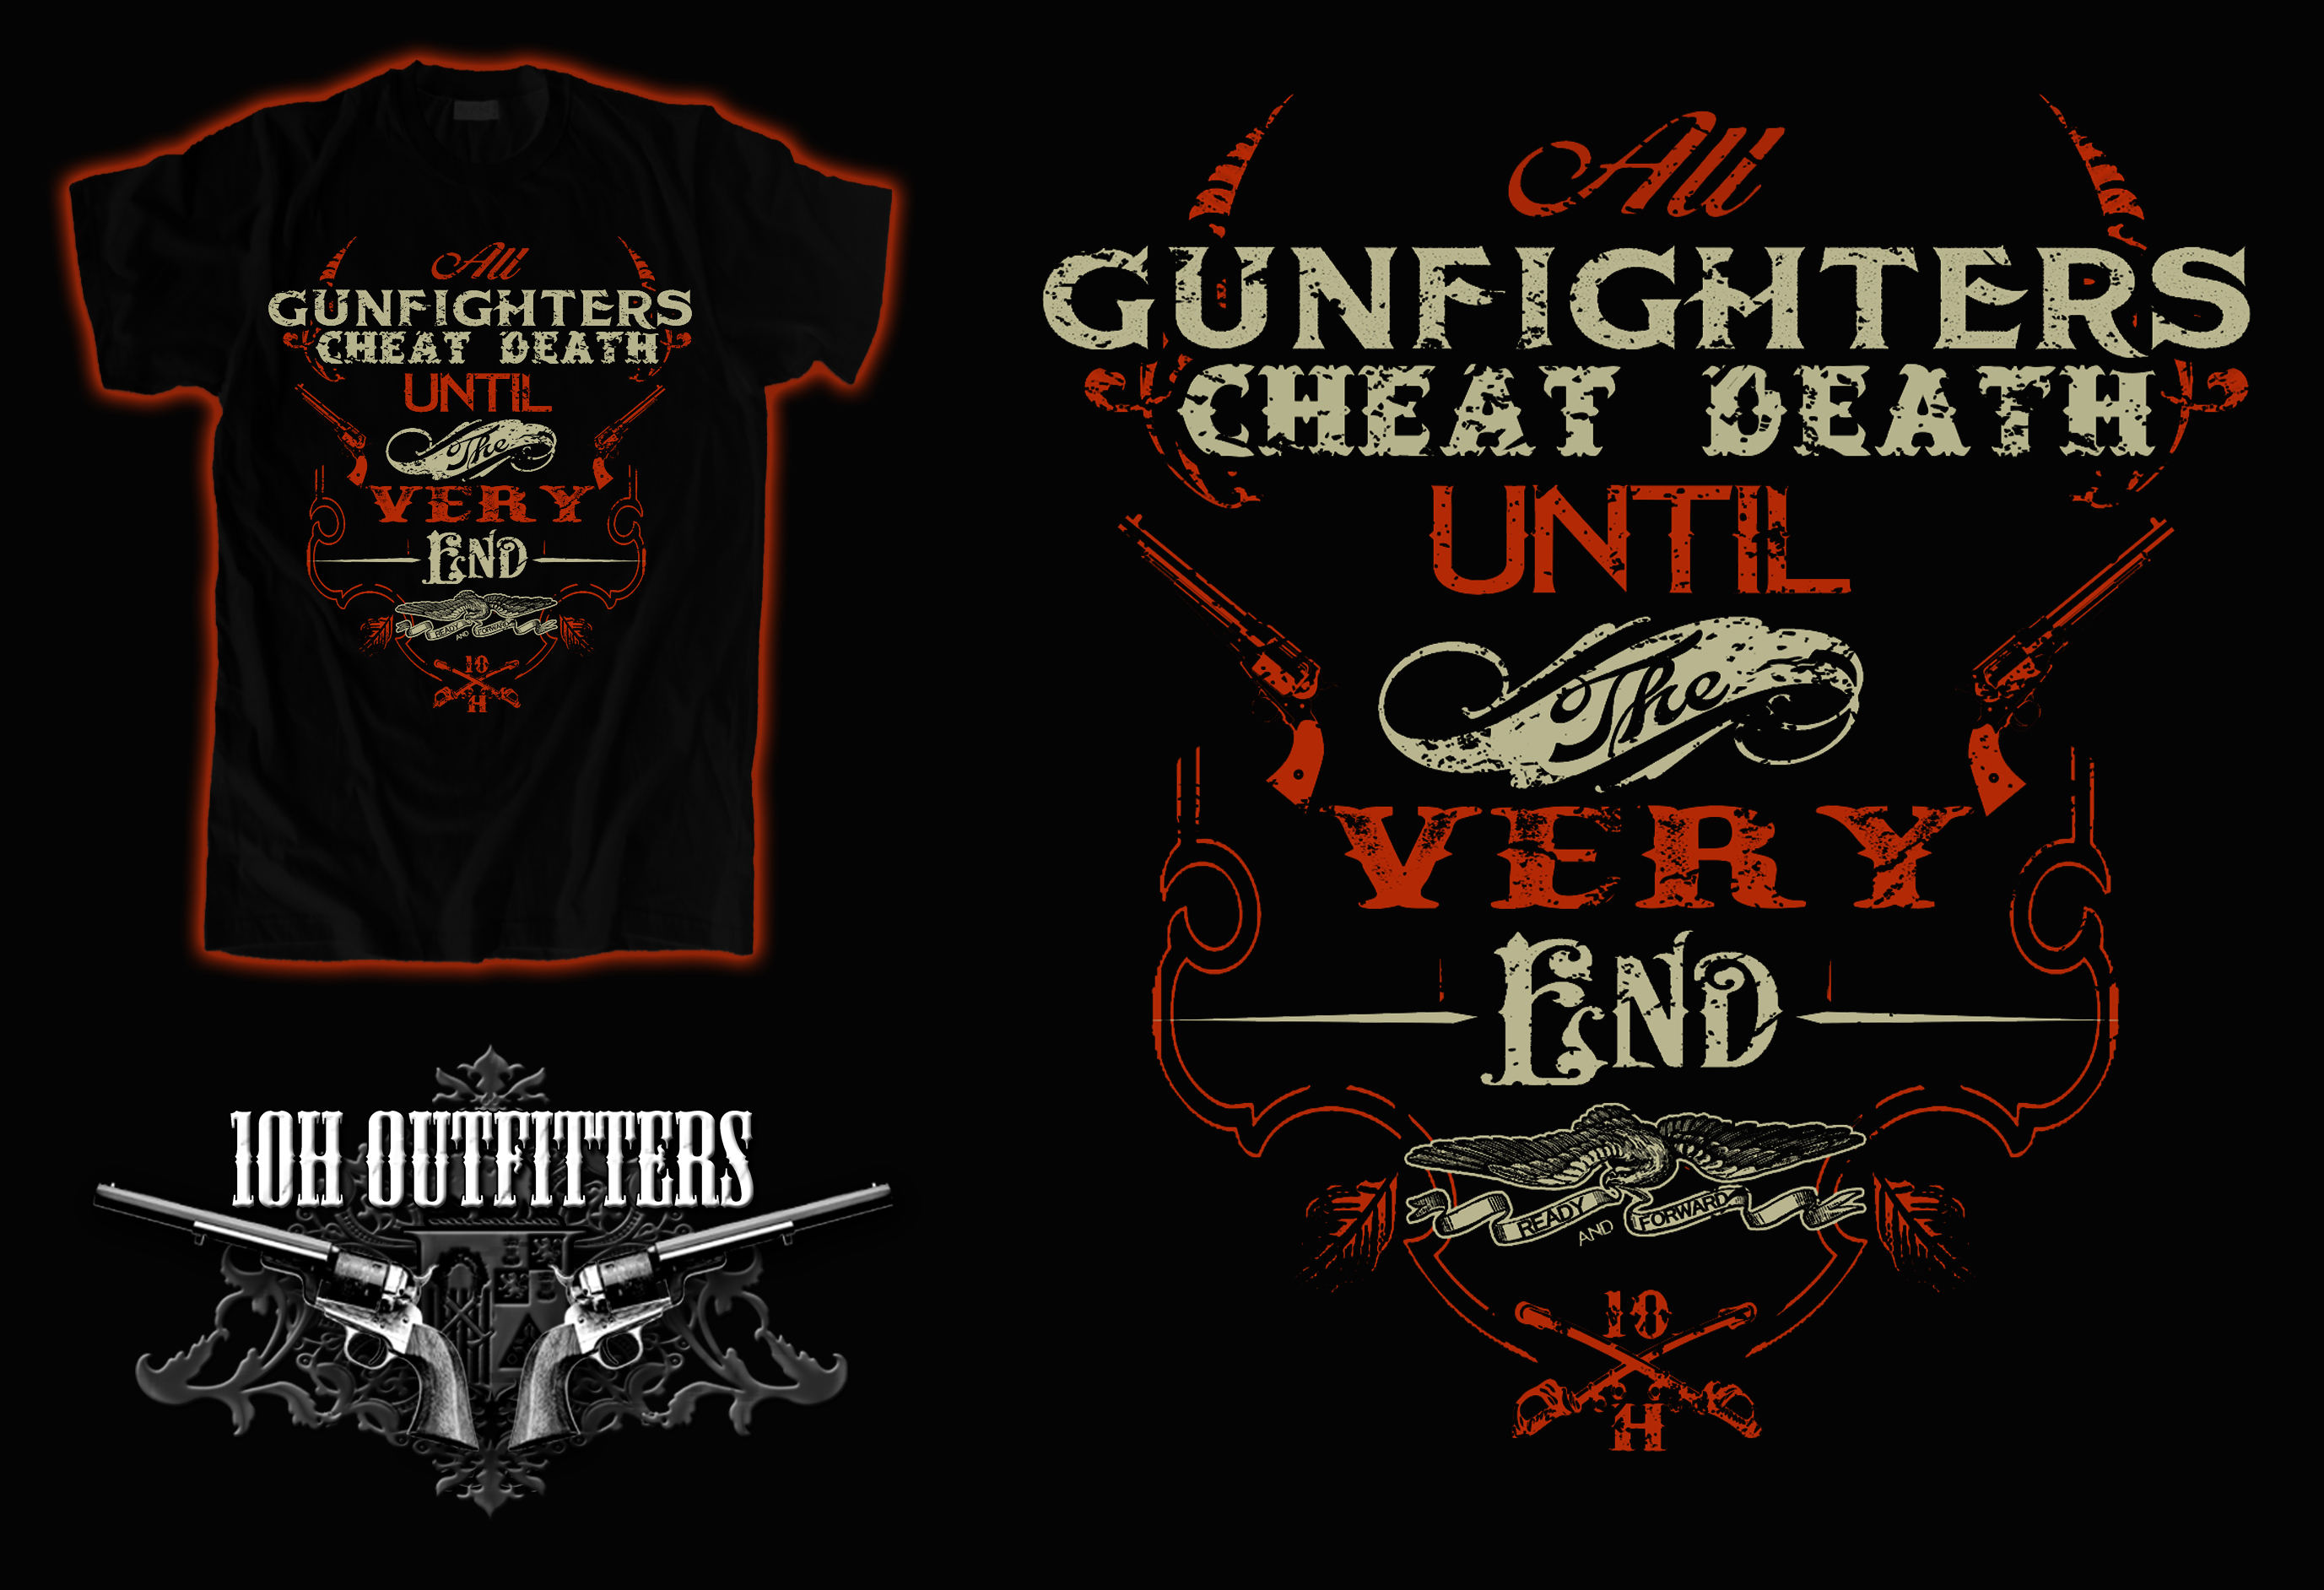 Old Western Typography Design 10houtfitters